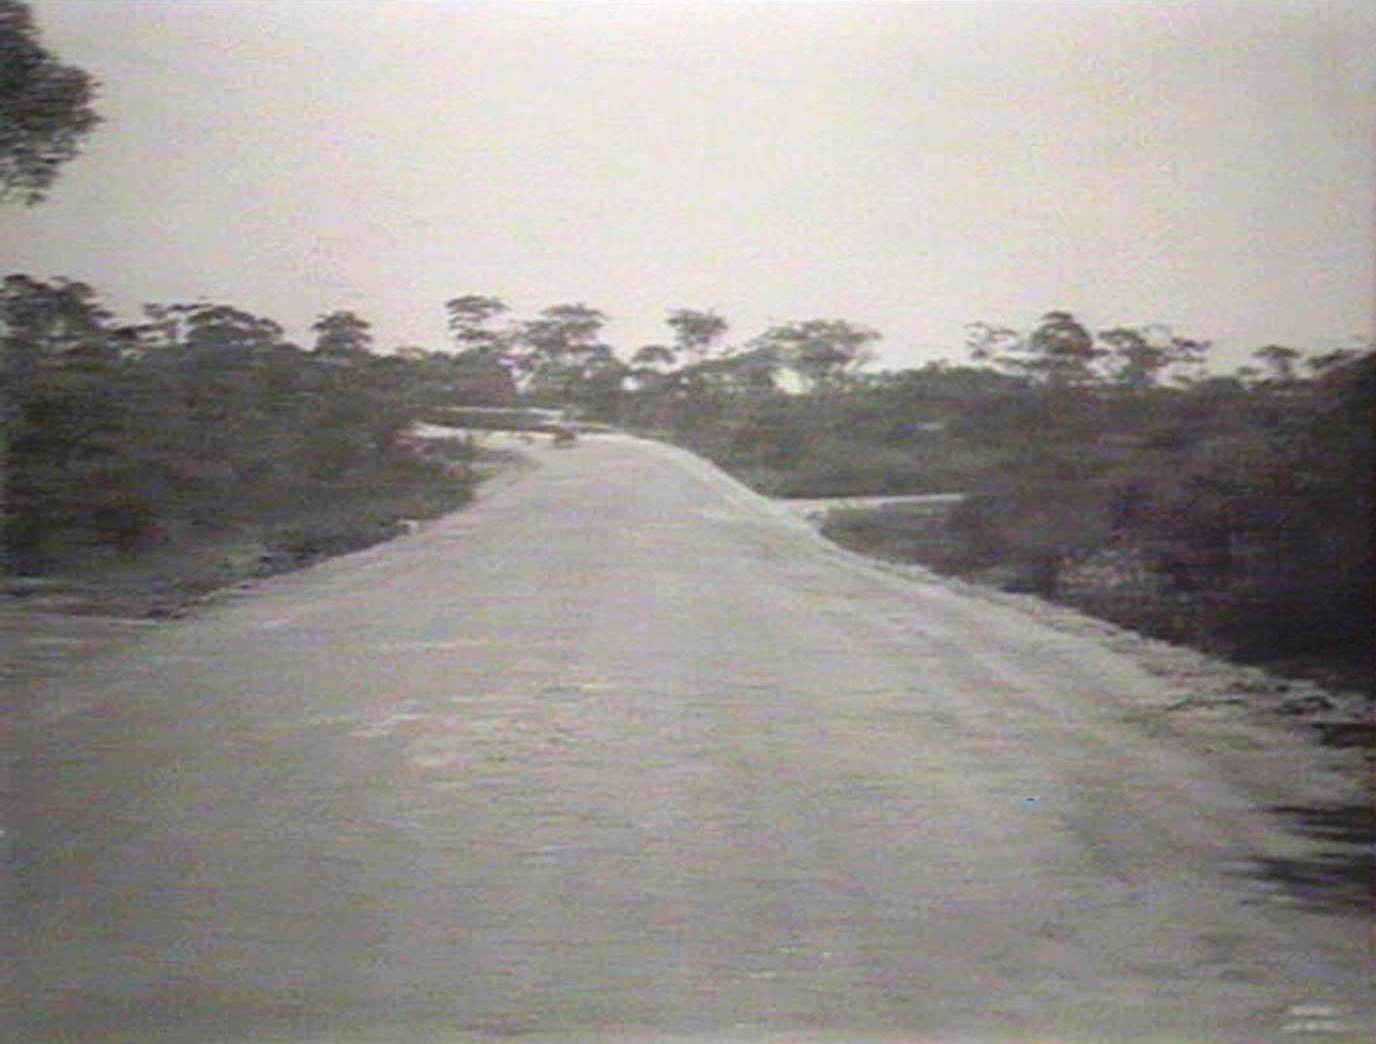 small resolution of pittwater rd after construction looking towards pacific highway august 1935 image no d1 21454h courtesy state library of nsw